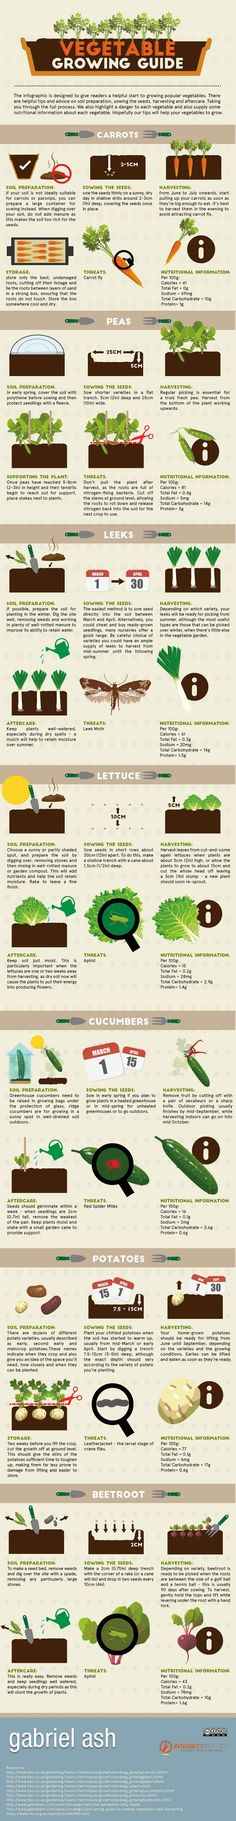 New gardeners will often find vegetable gardening to be quite challenging at first. It is completely understandable. Lots of unexpected problems may arise during the whole vegetable growing process–which could be exciting yet frustrating at the same time. To help you grow these popular vegetables, check out this awesome guide from Gabriel Ash.